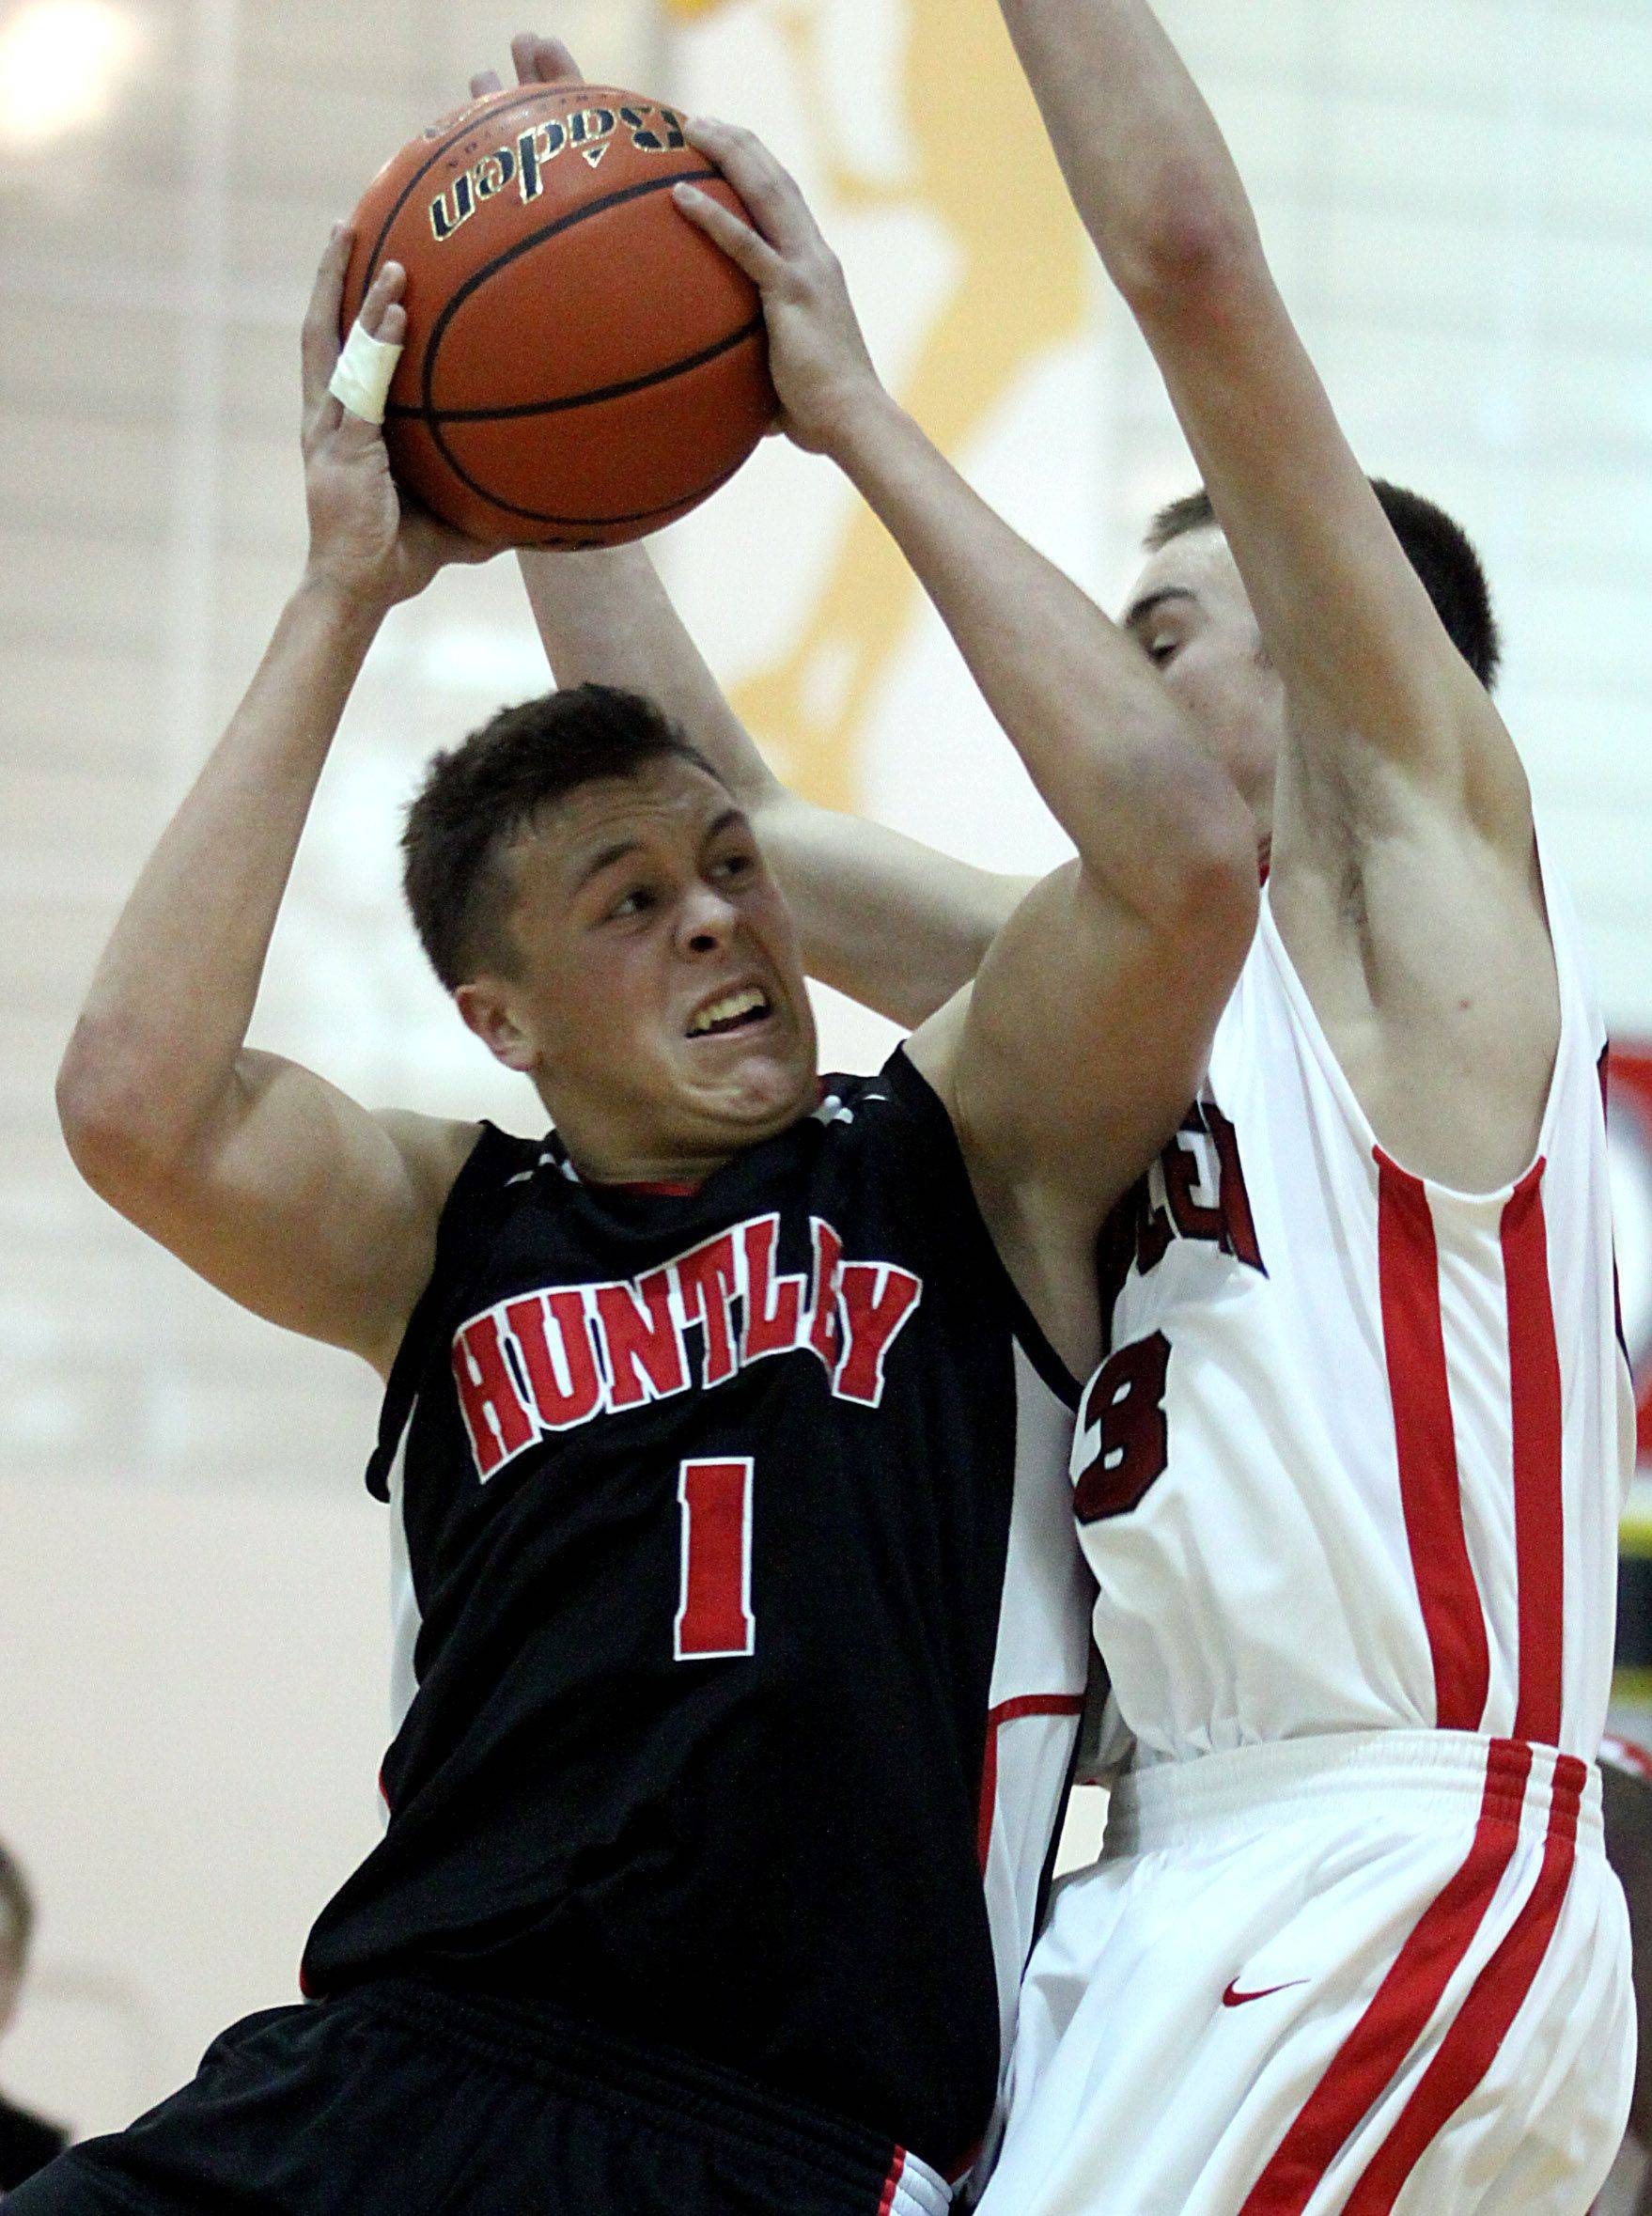 Dylan Neukirch of Huntley goes to the hoop against Mundelein during the title game of the Jacobs Holiday Classic Boys Basketball Tournament in Algonquin.